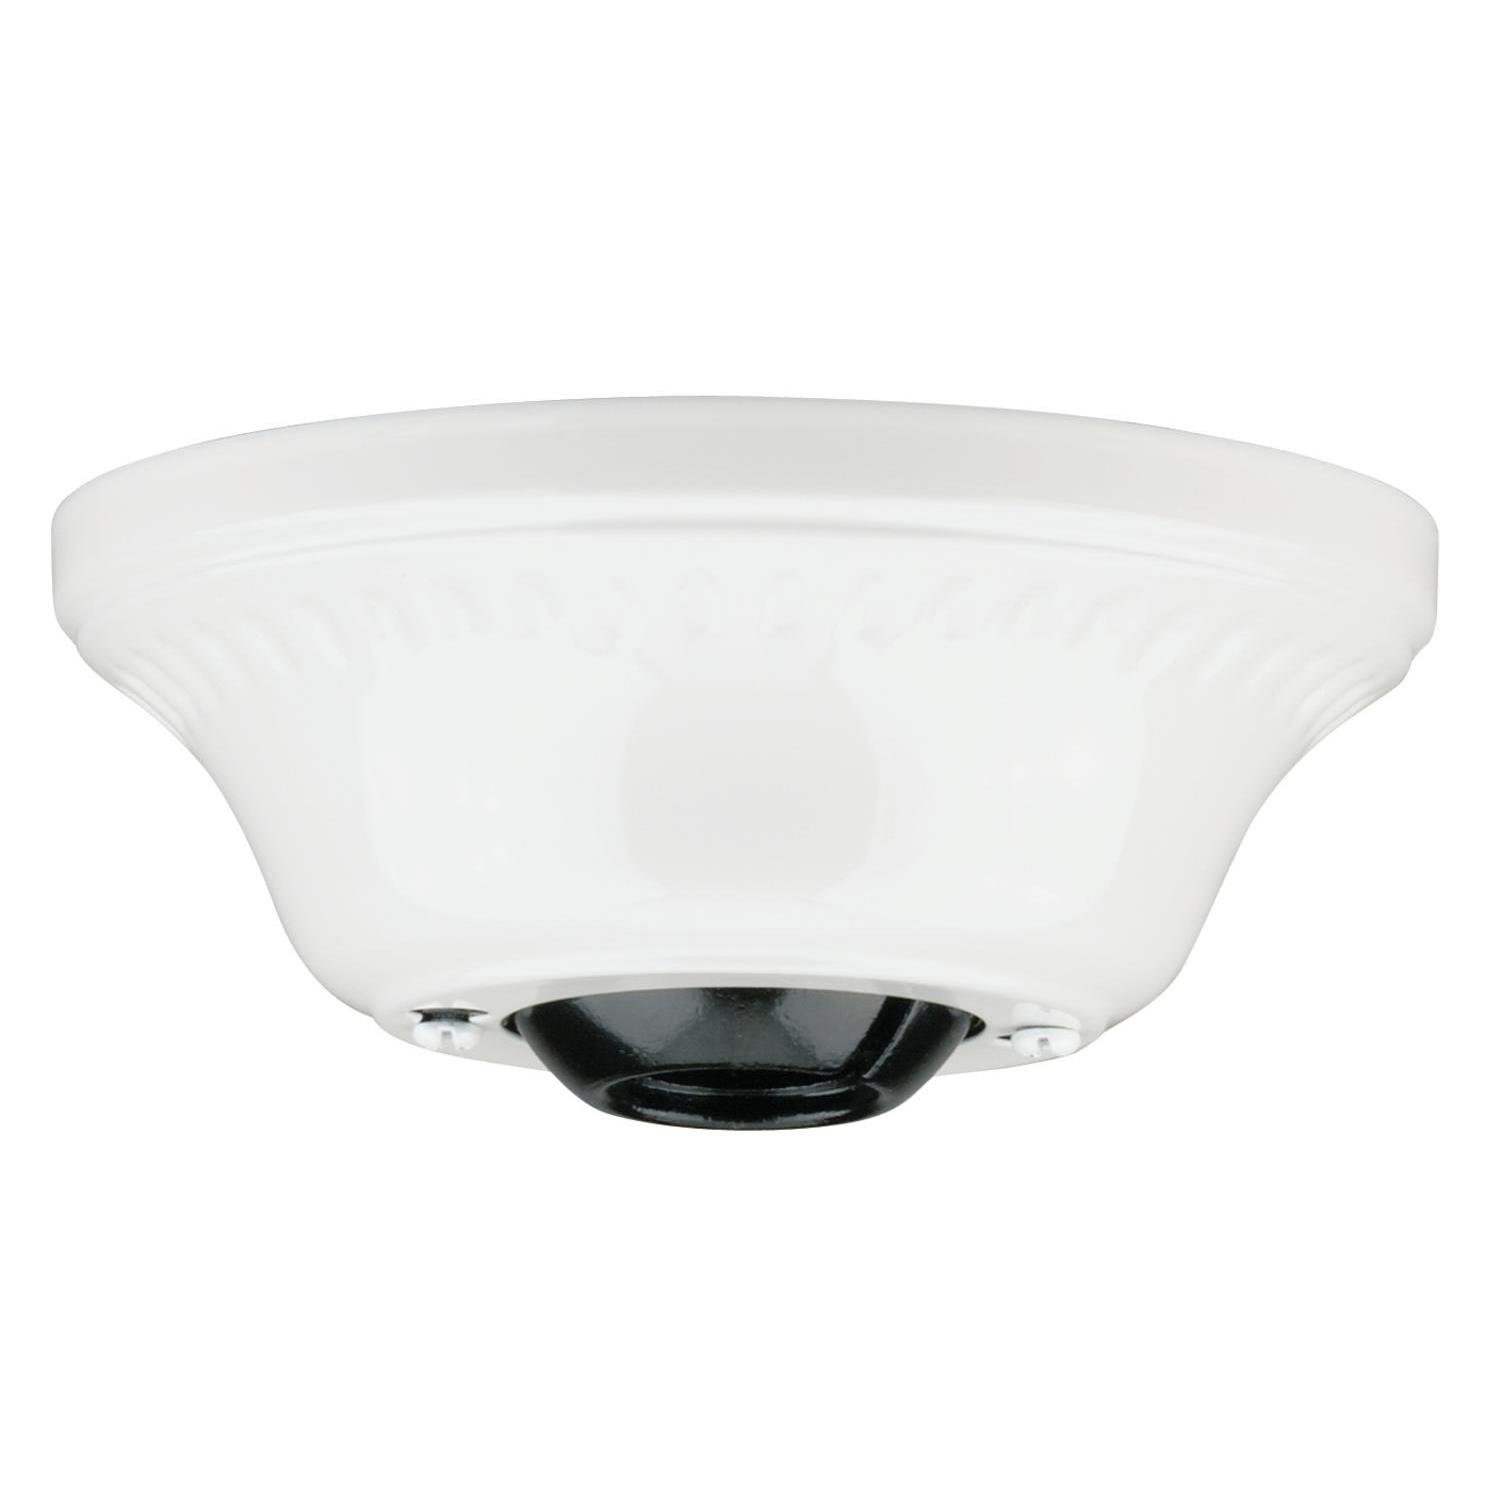 Westinghouse Lighting 77079 Corp 3/4-Inch Ceiling Canopy Kit, White Finish